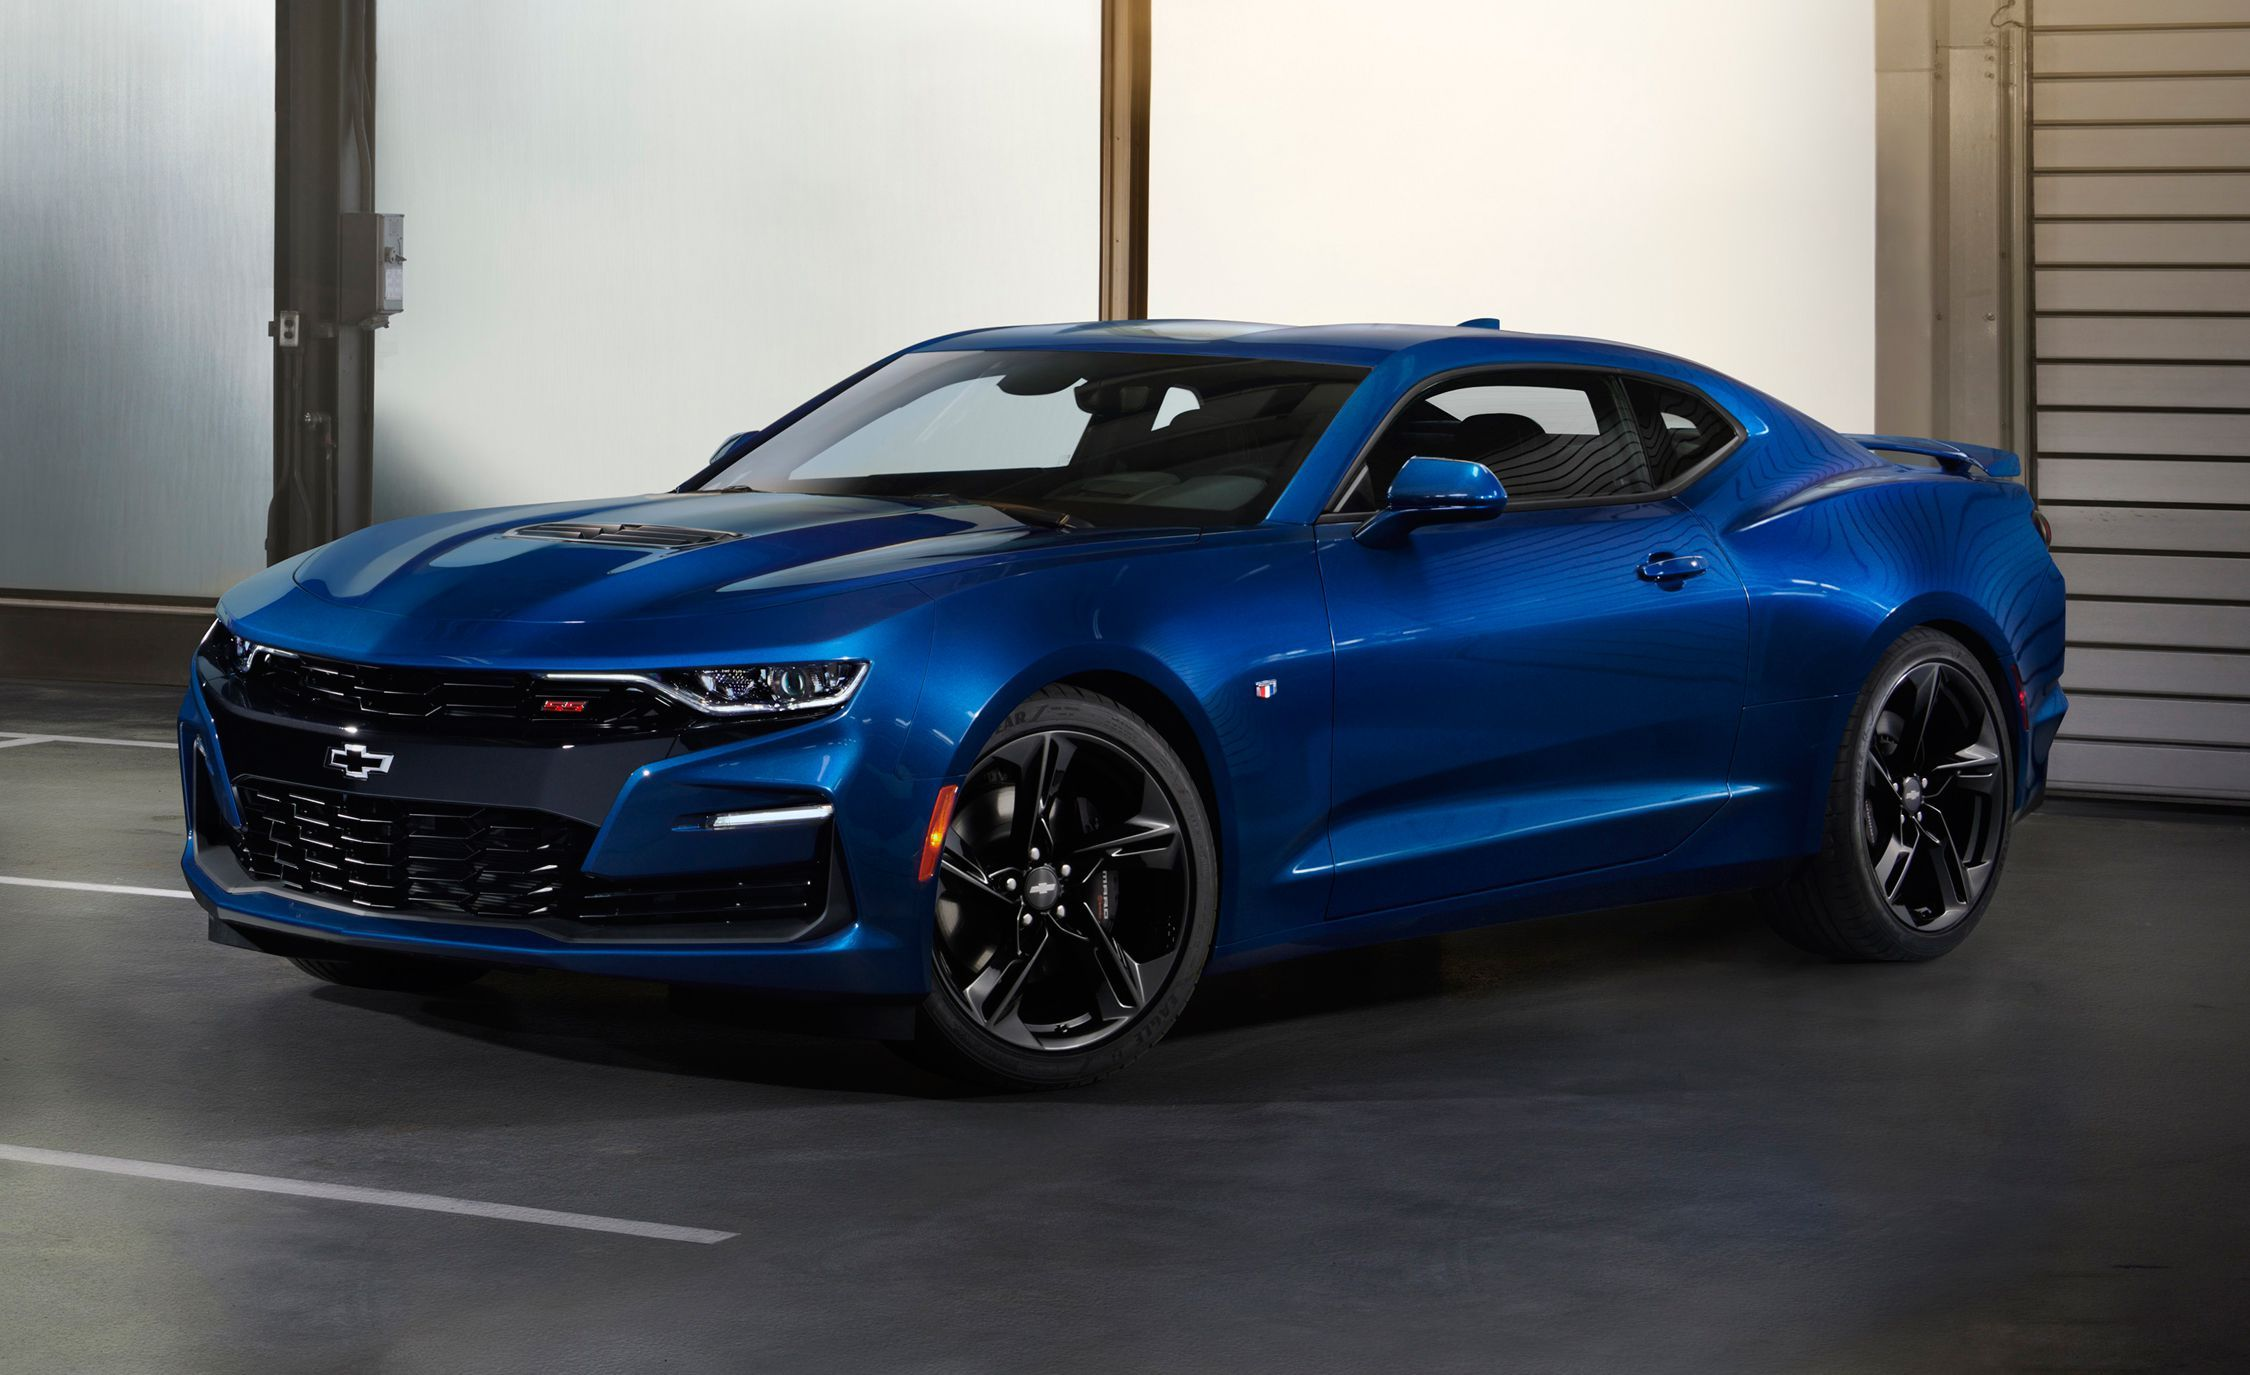 2019 Chevrolet Camaro This Refresh Is An Evolution Not A